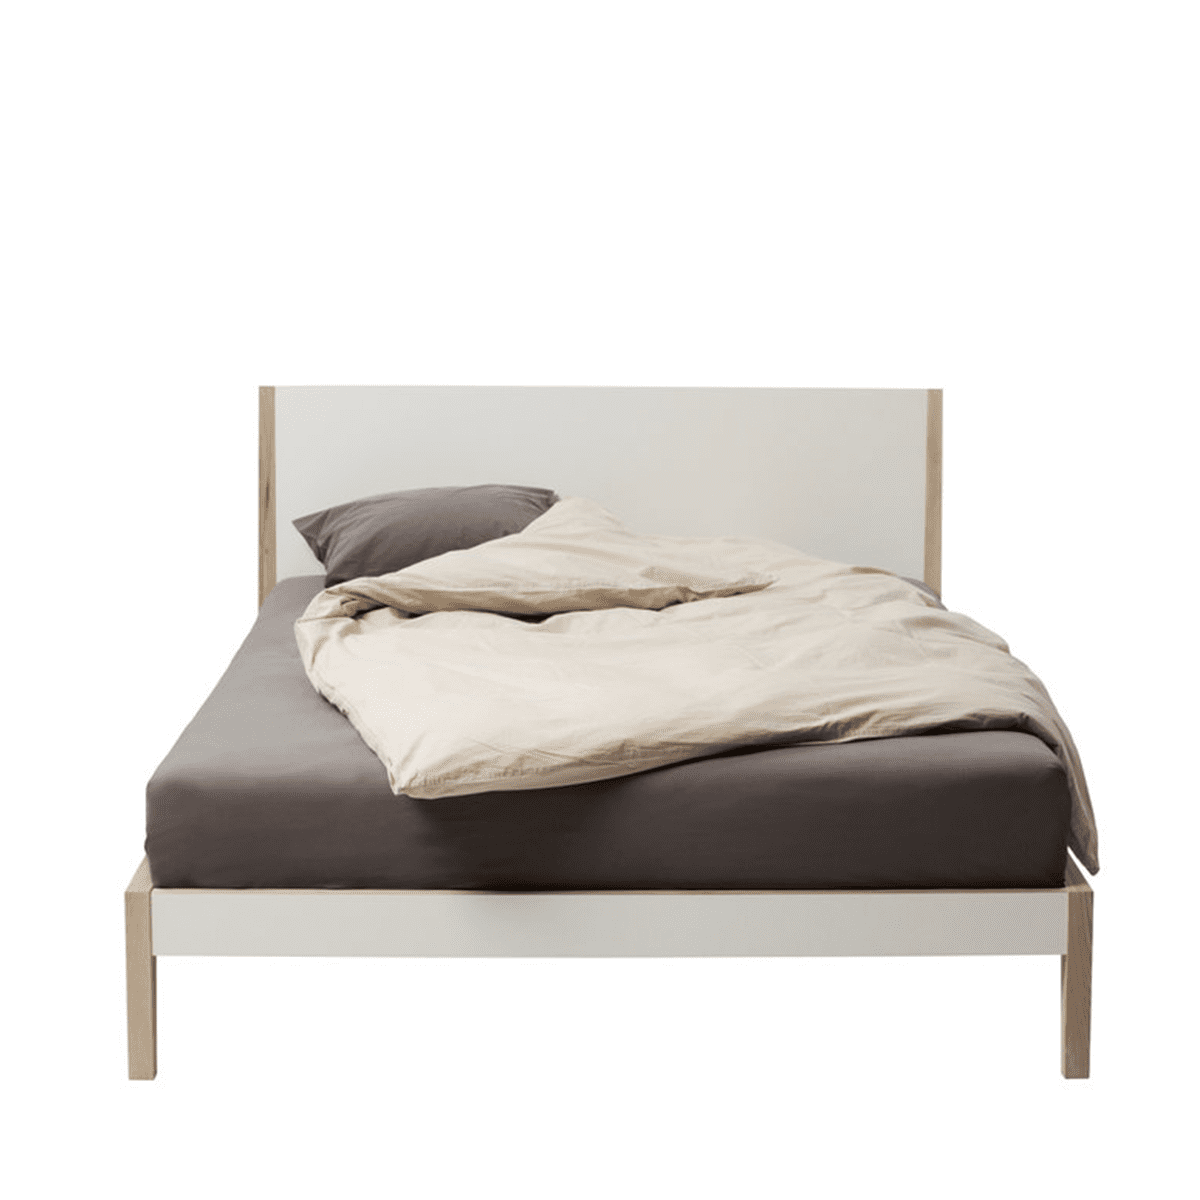 Double Bed - Mint Light Living